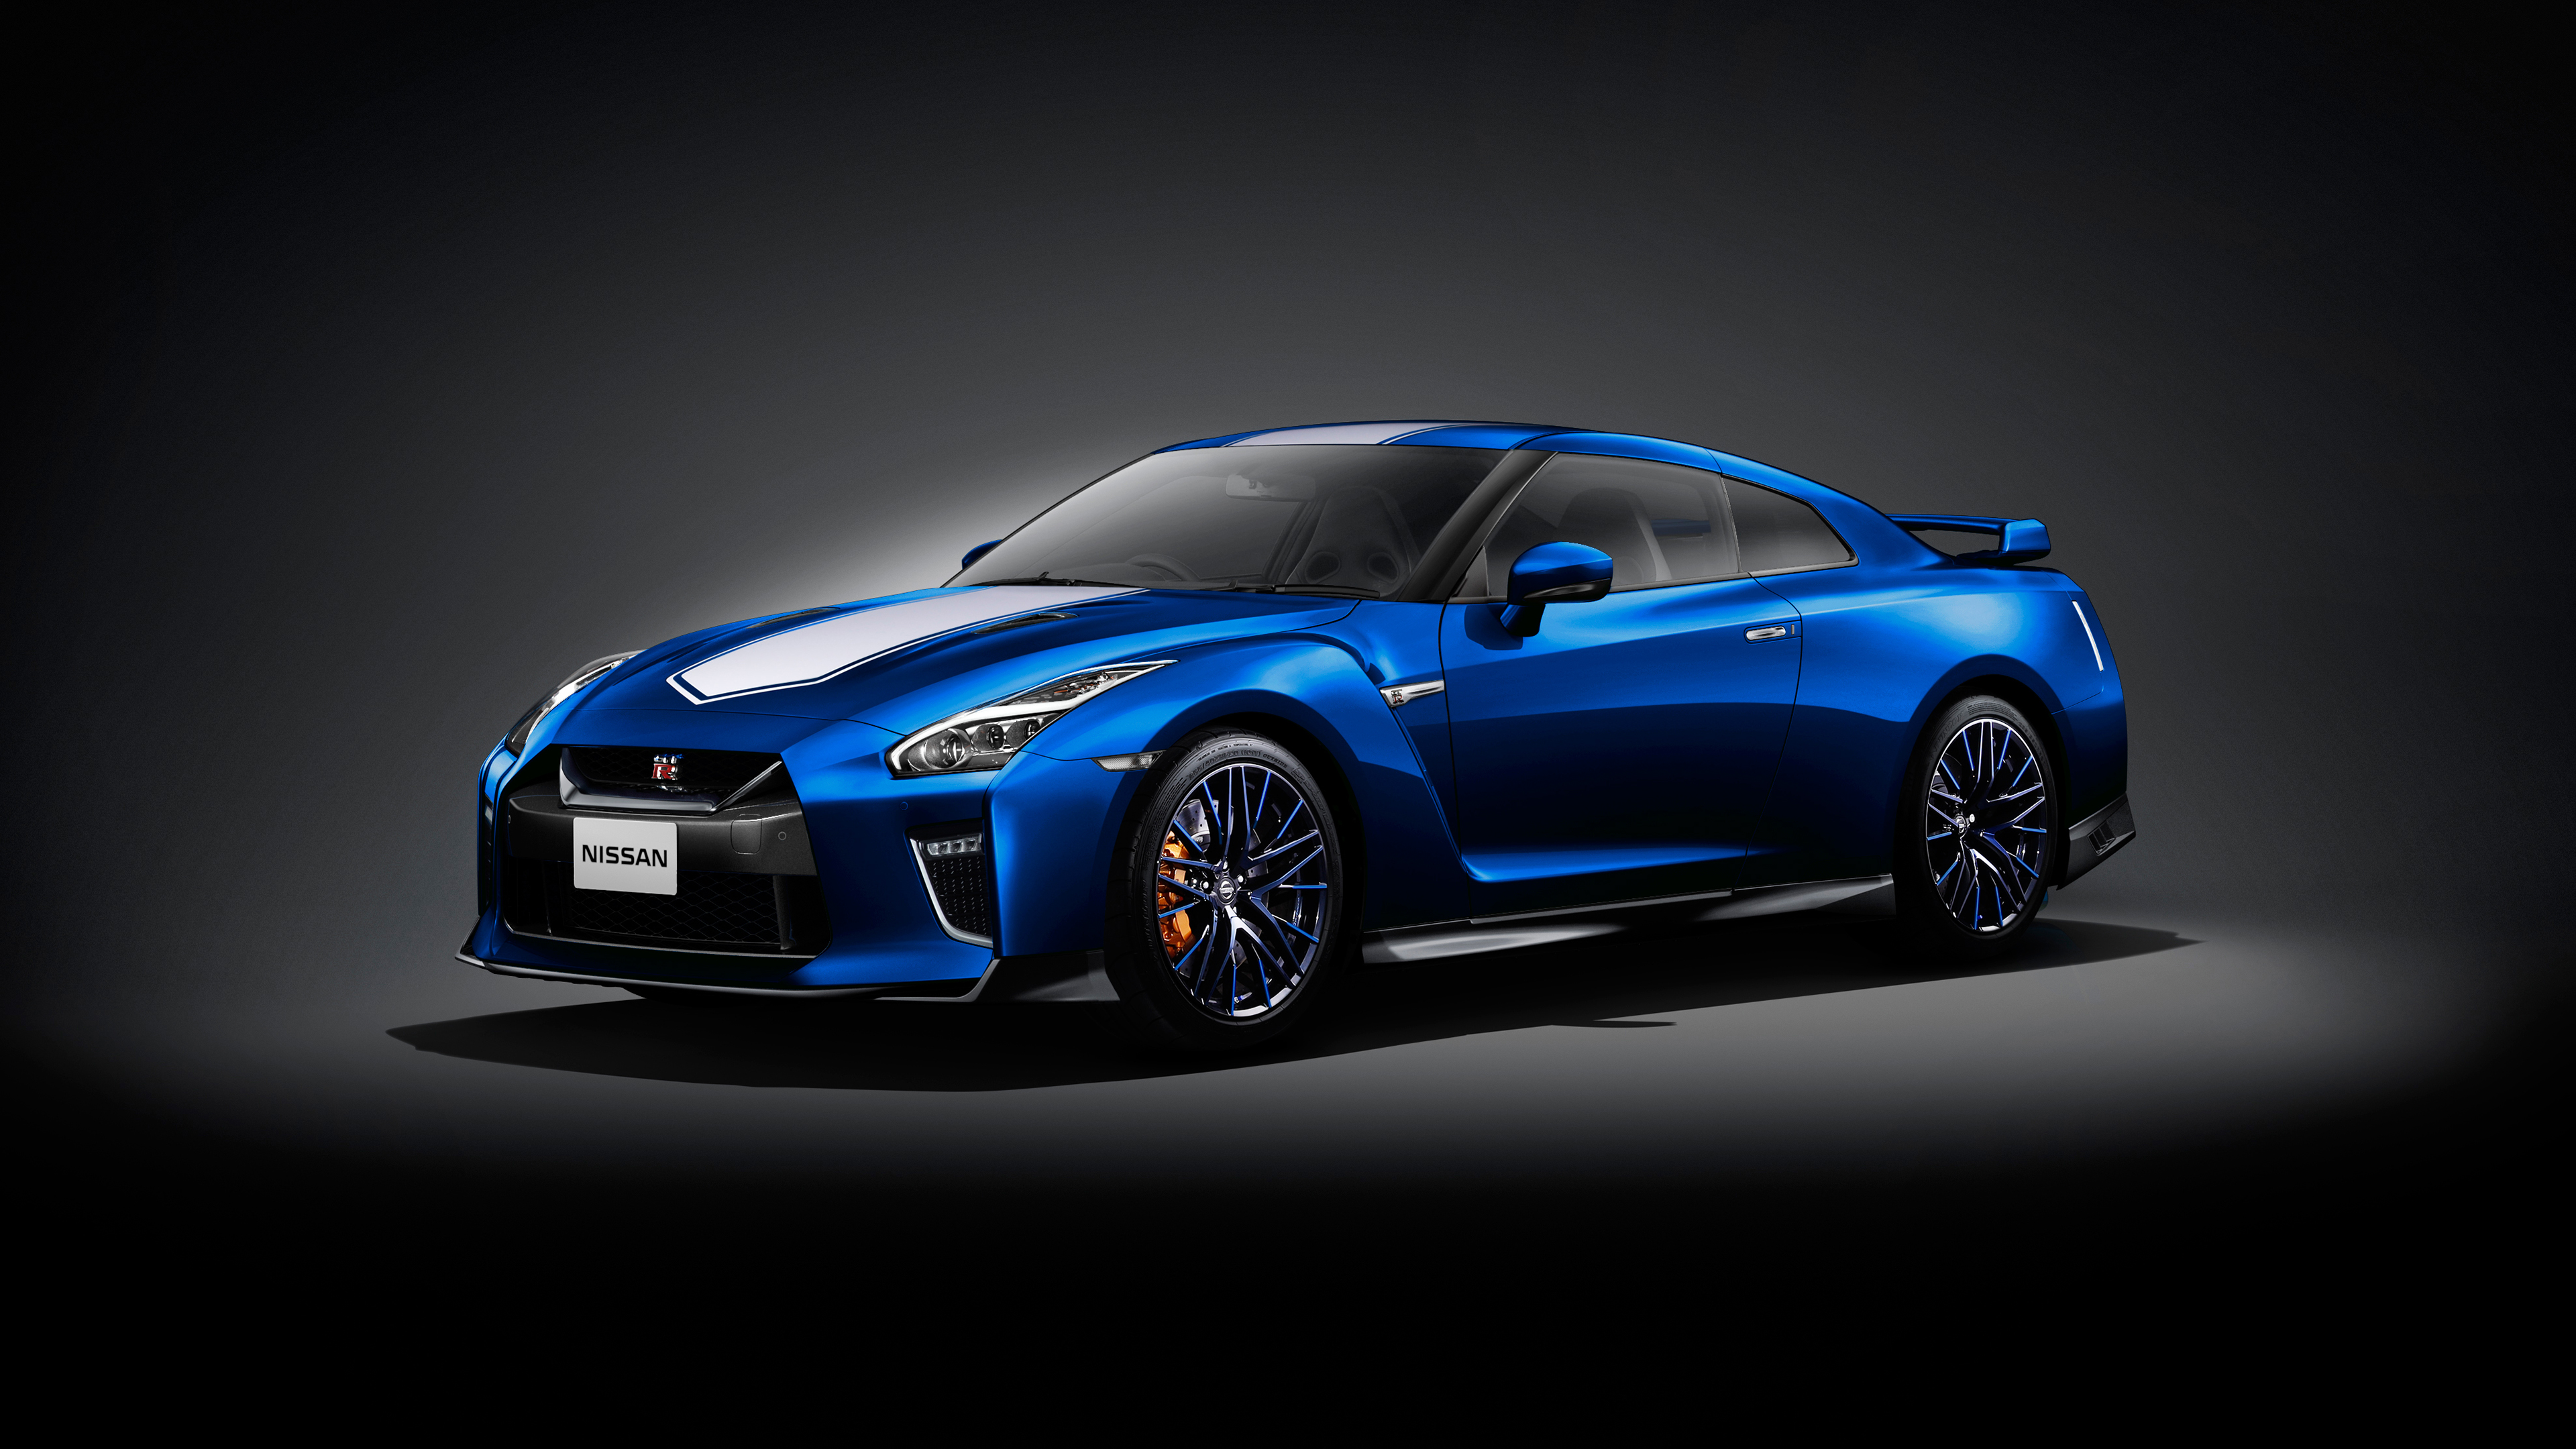 Nissan Gt R 50th Anniversary 2019 4k Wallpapers Hd Wallpapers